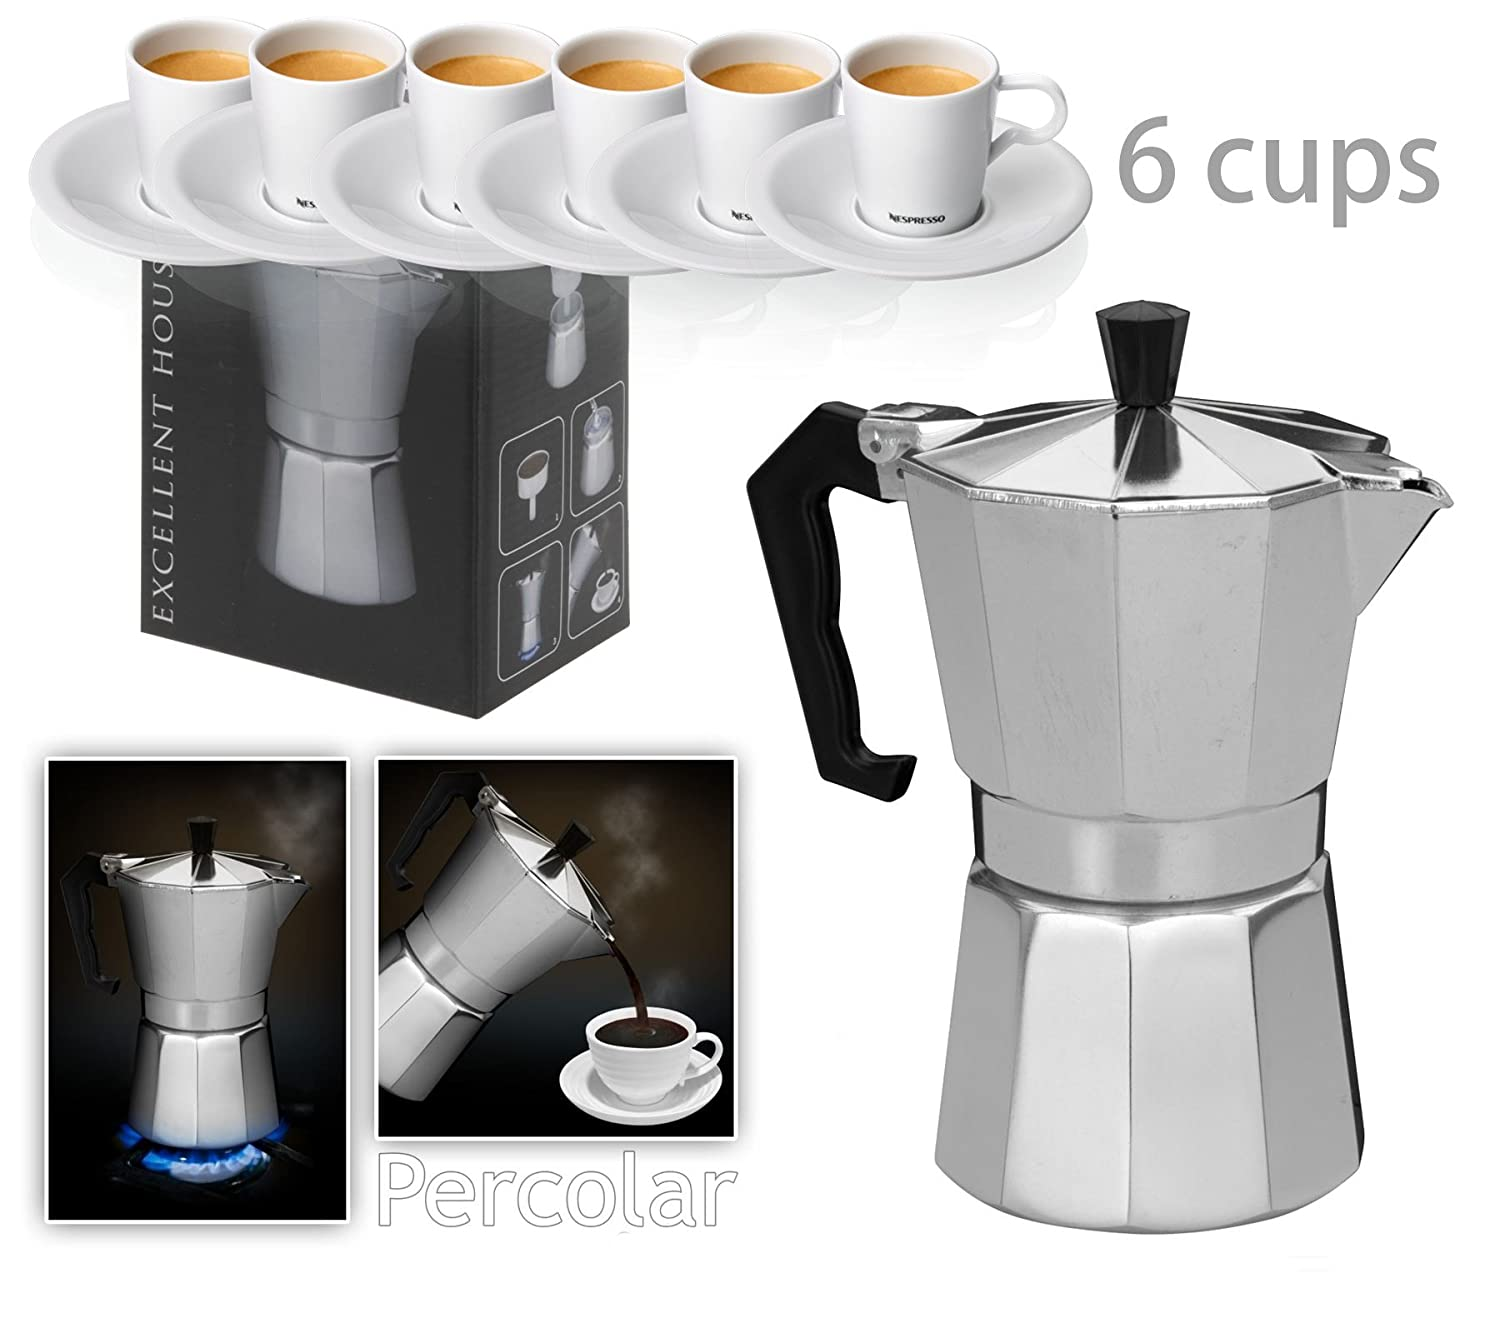 Italian Espresso Latte Cafetiere Coffee Maker 1 Cup 3 Cups 6 Cups Percolator (1 Cup) Innova Brands Ltd.